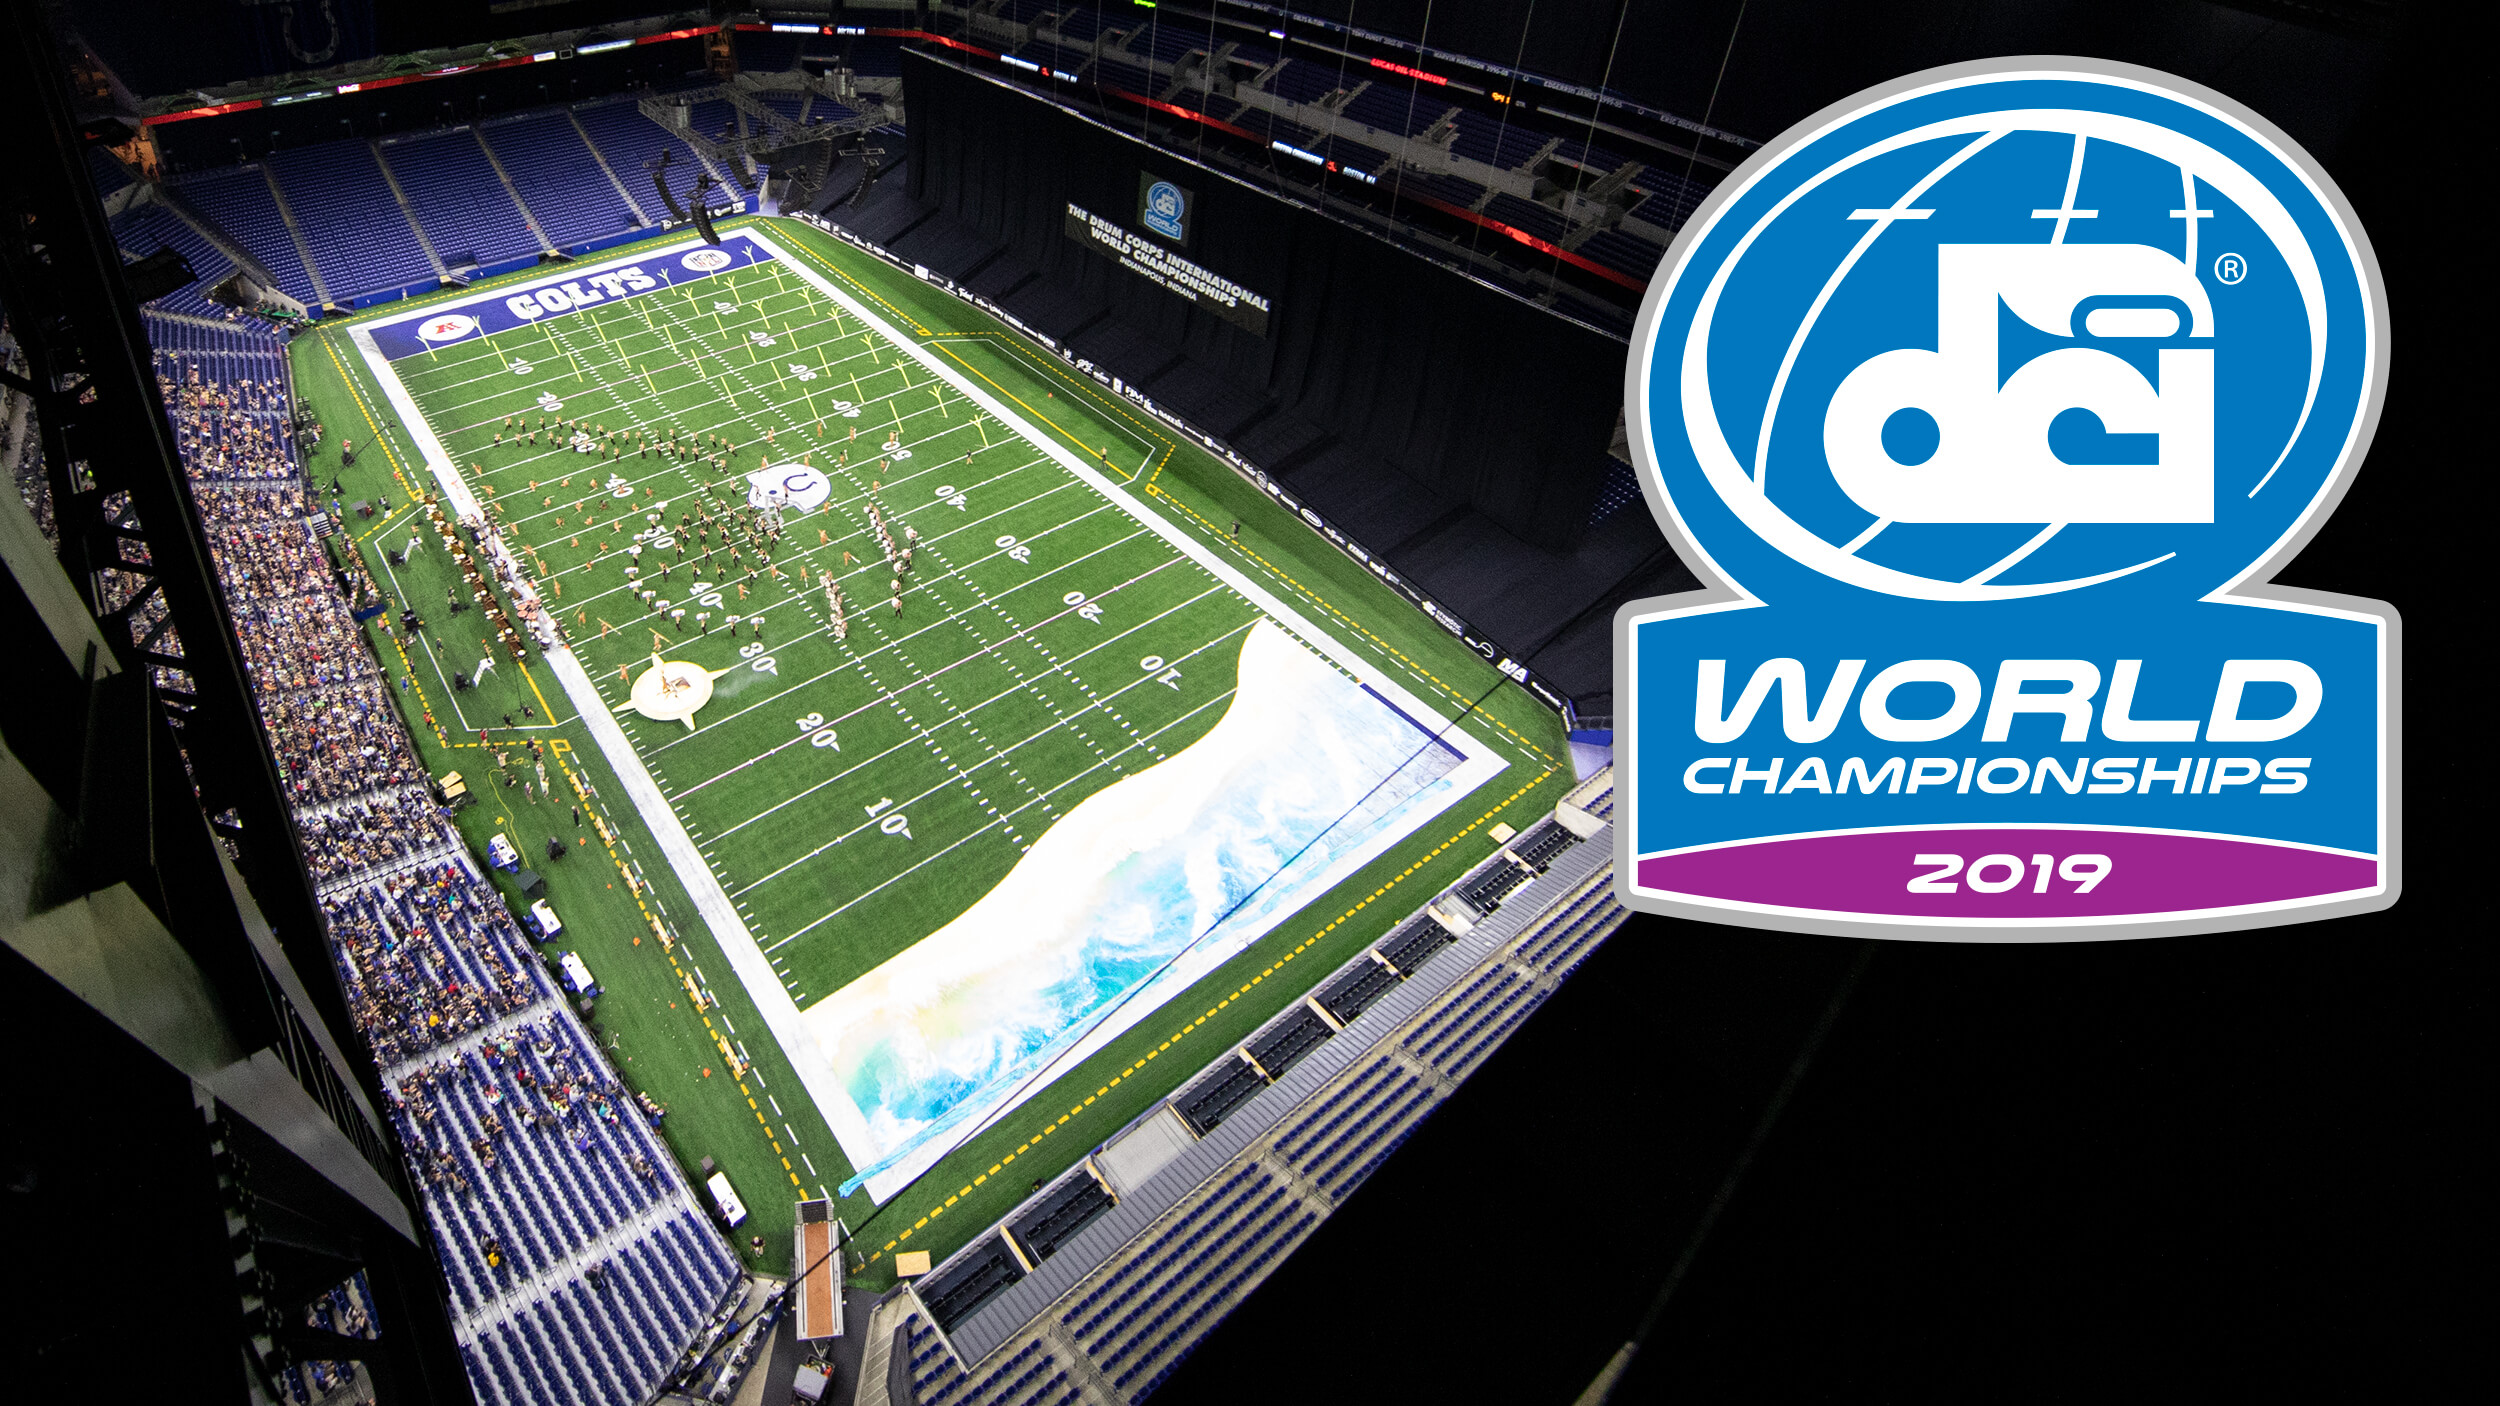 Day-by-day guide to the 2019 DCI World Championships